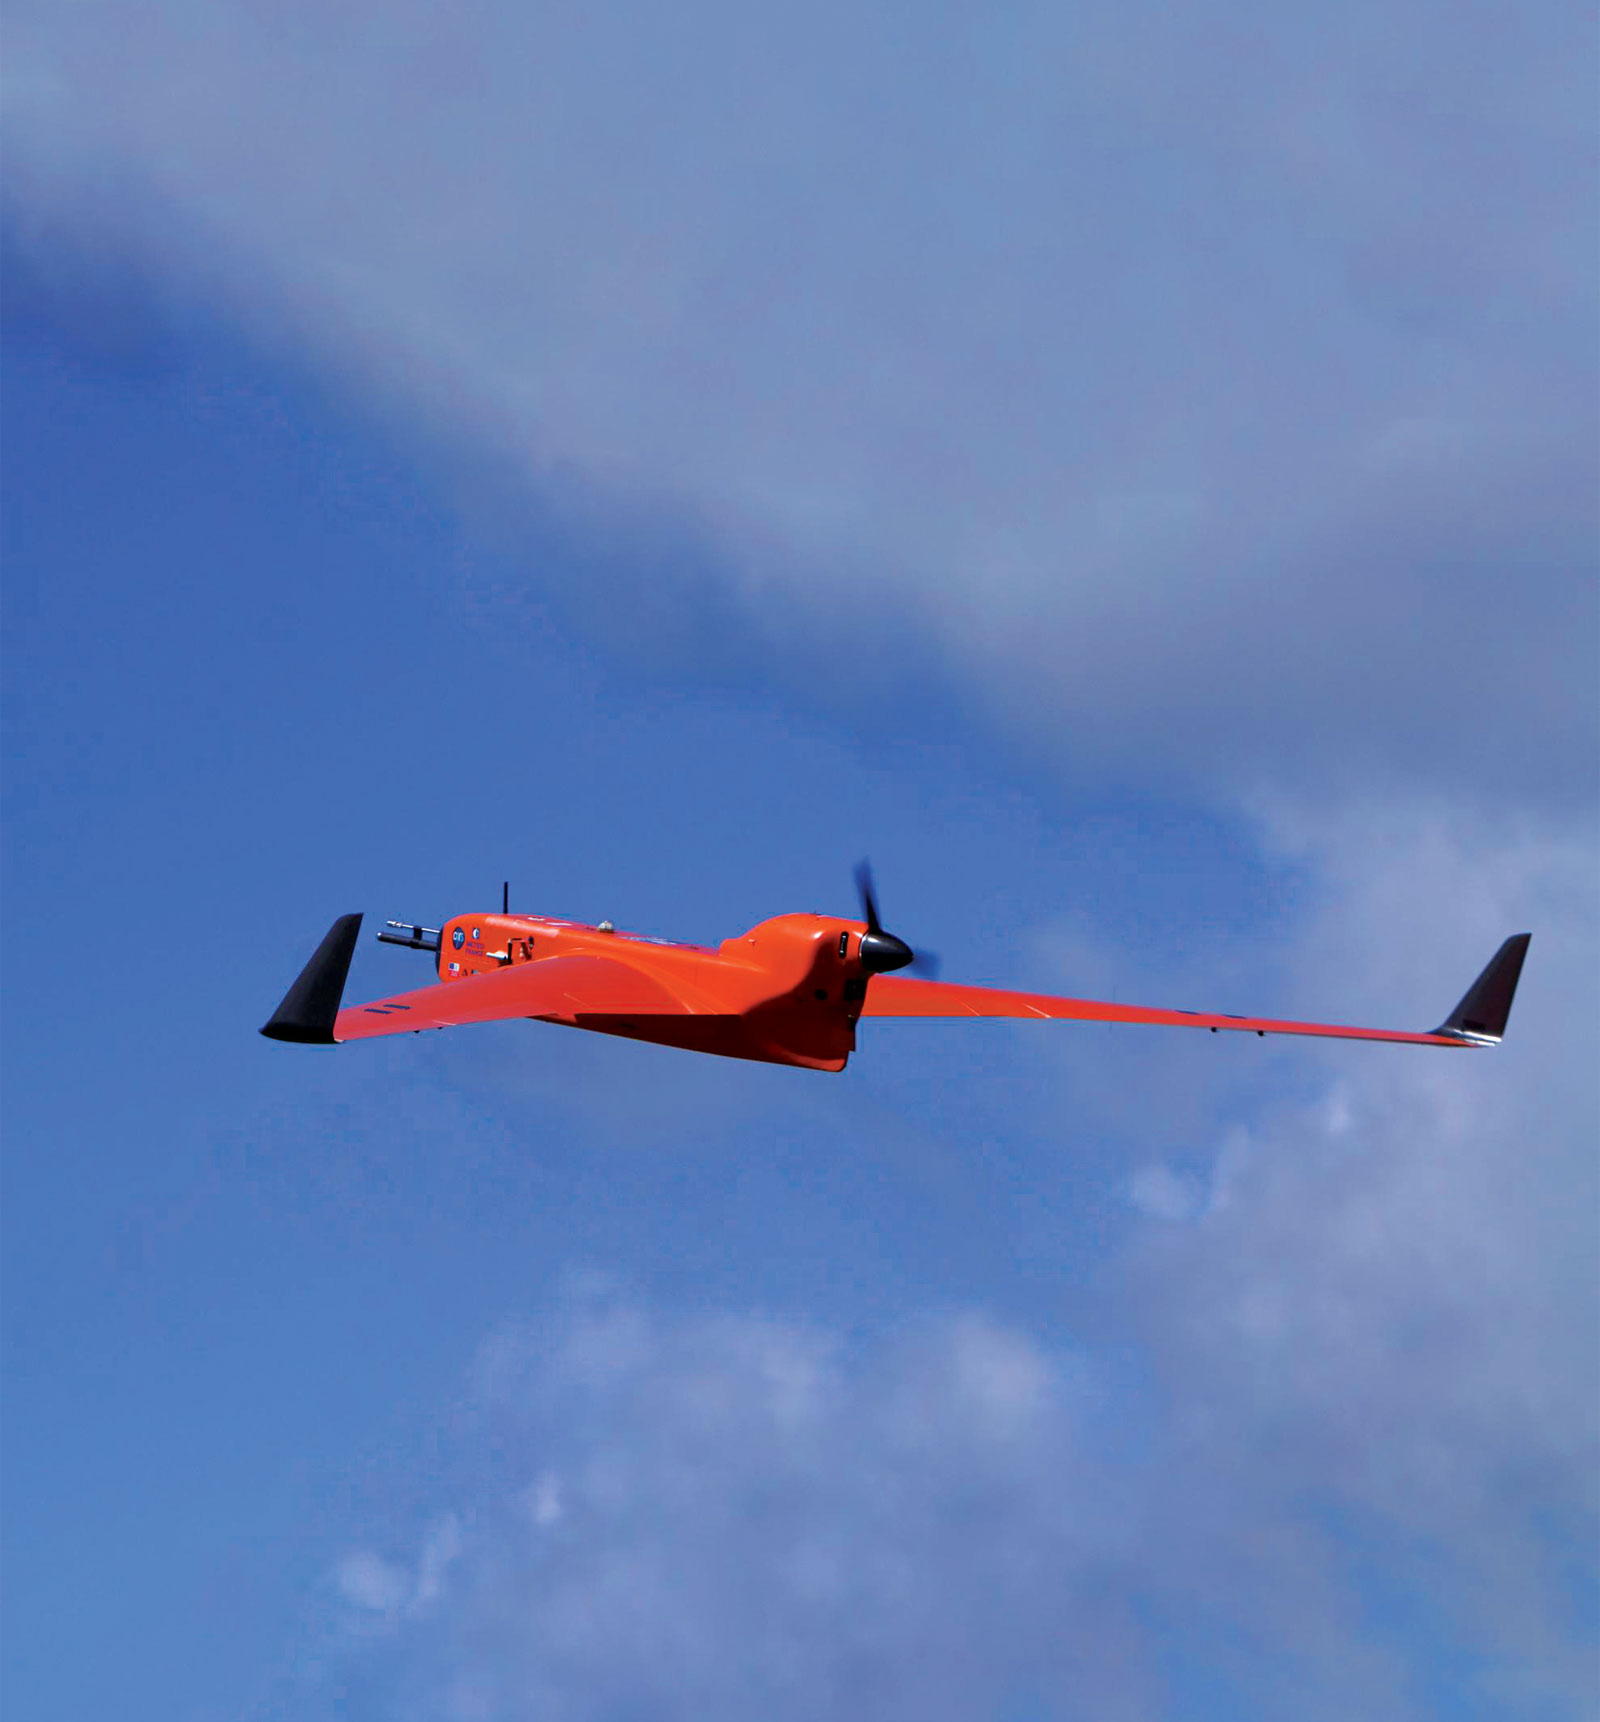 Action image of drone in sky